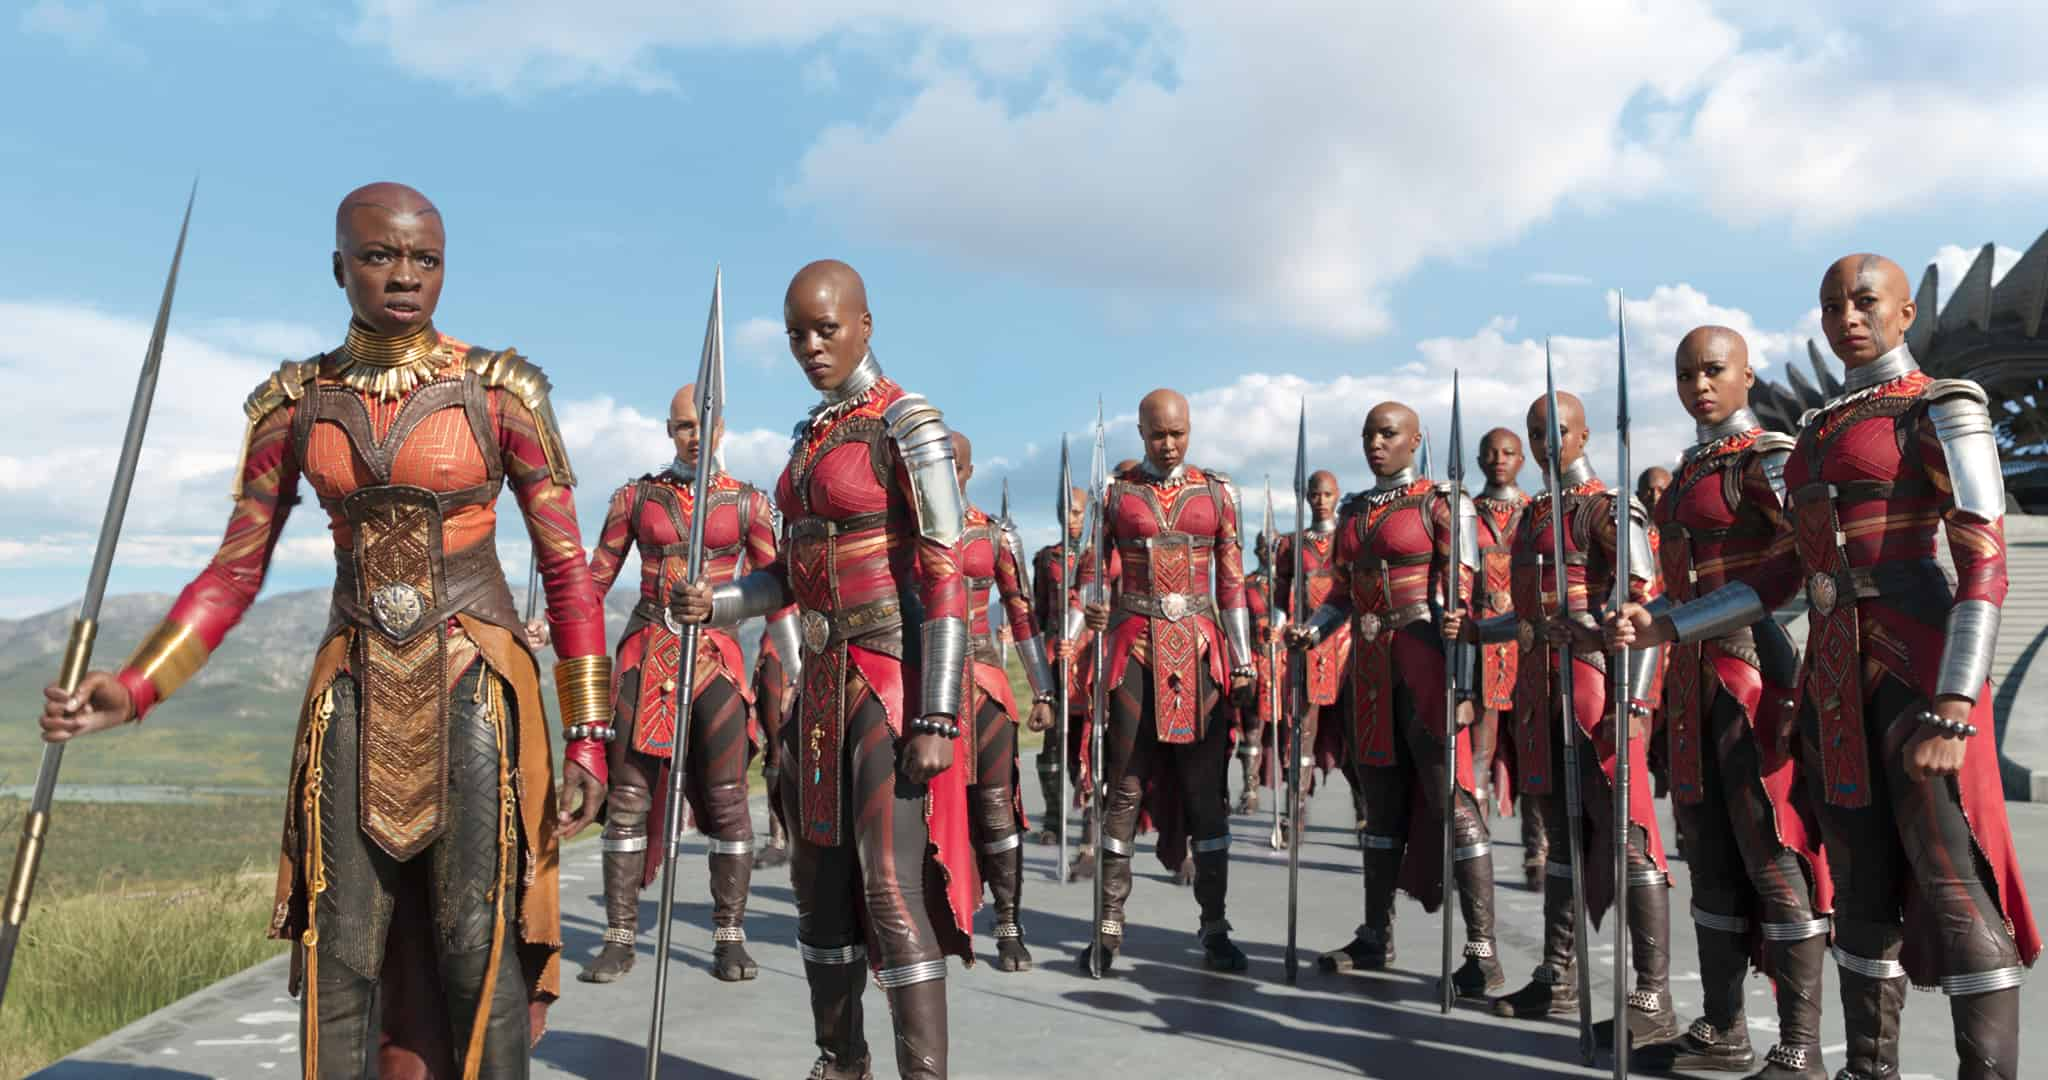 The Dora Milaje are the bodyguards of Black Panther - a must-see of girls everywhere.